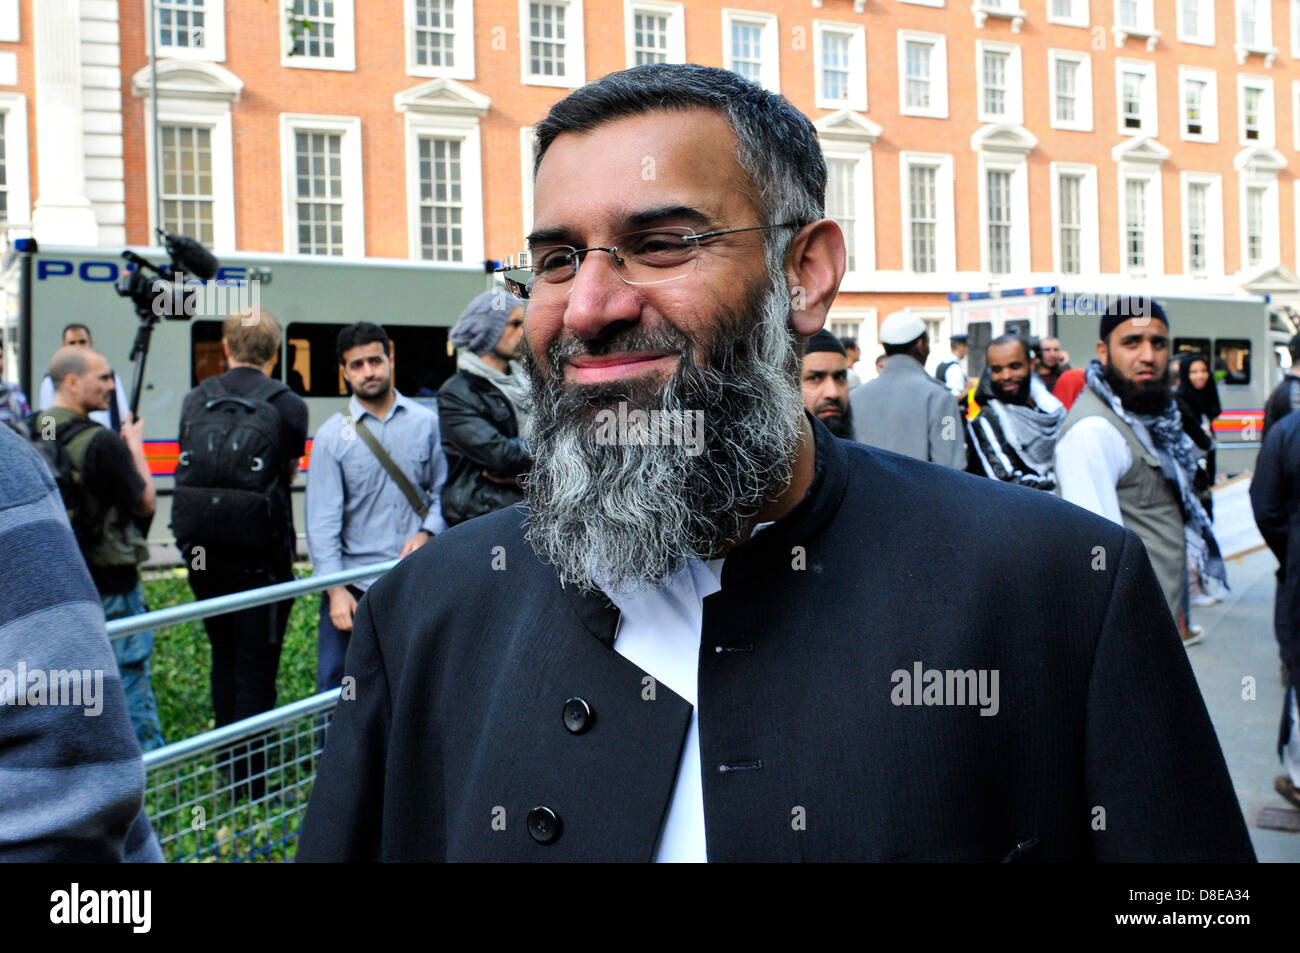 The Radical Islamist Anjem Choudary at a protest outside the US Embassy in London, UK. - Stock Image